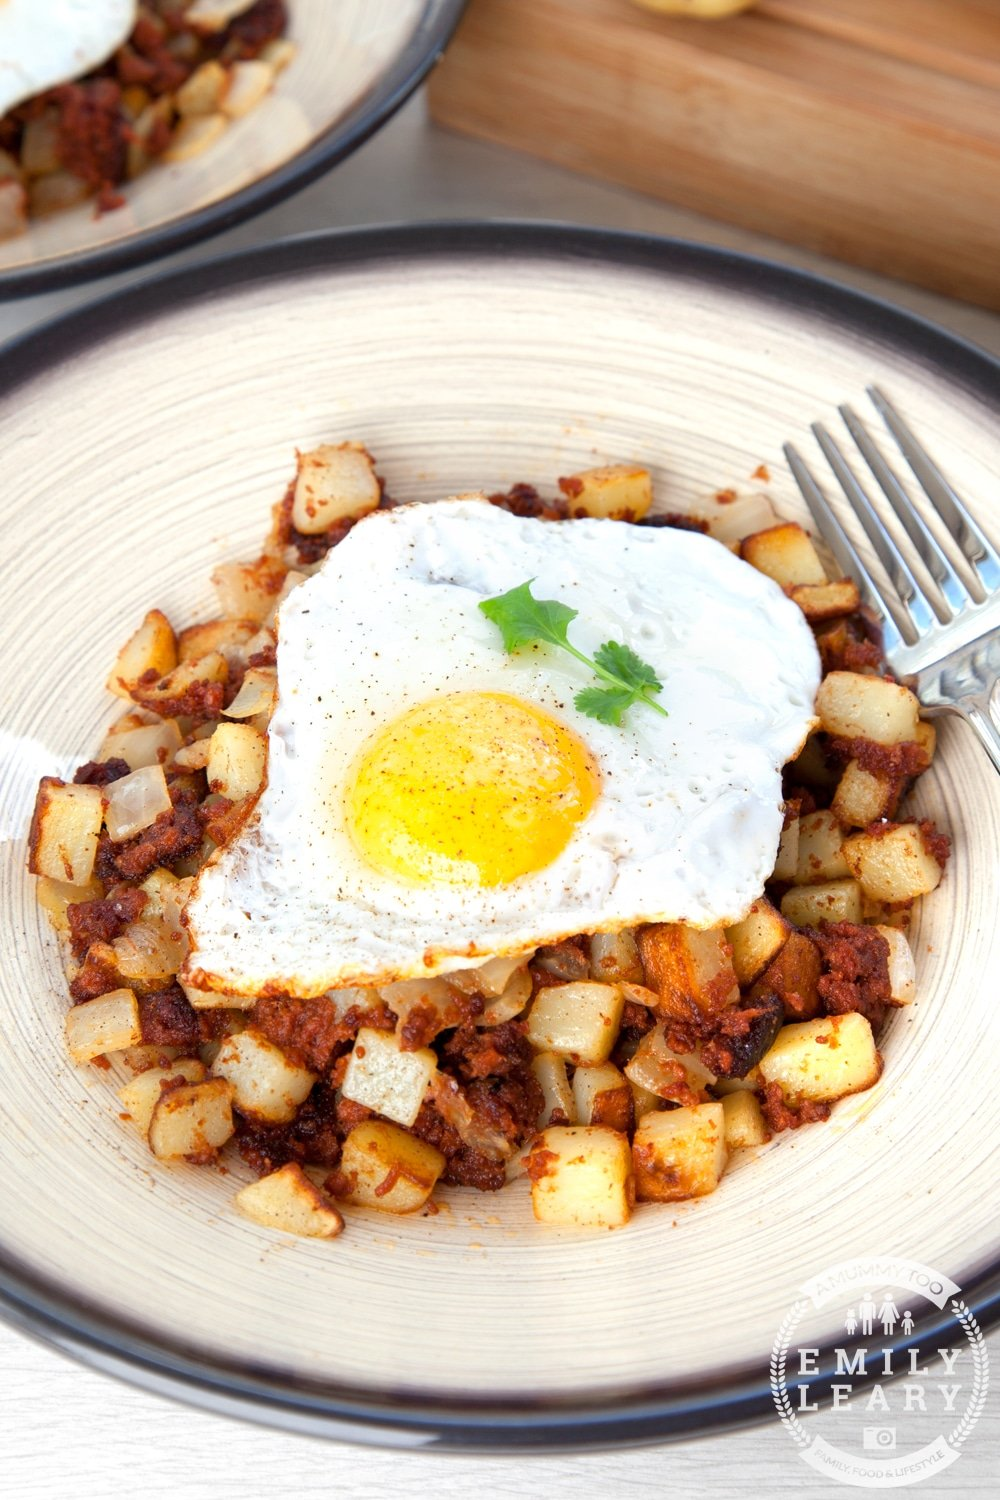 Corned beef hash is a classic, so why not spice up your lunchtime with this chilli version? This chilli corned beef hash is easy to make and utterly delicious.